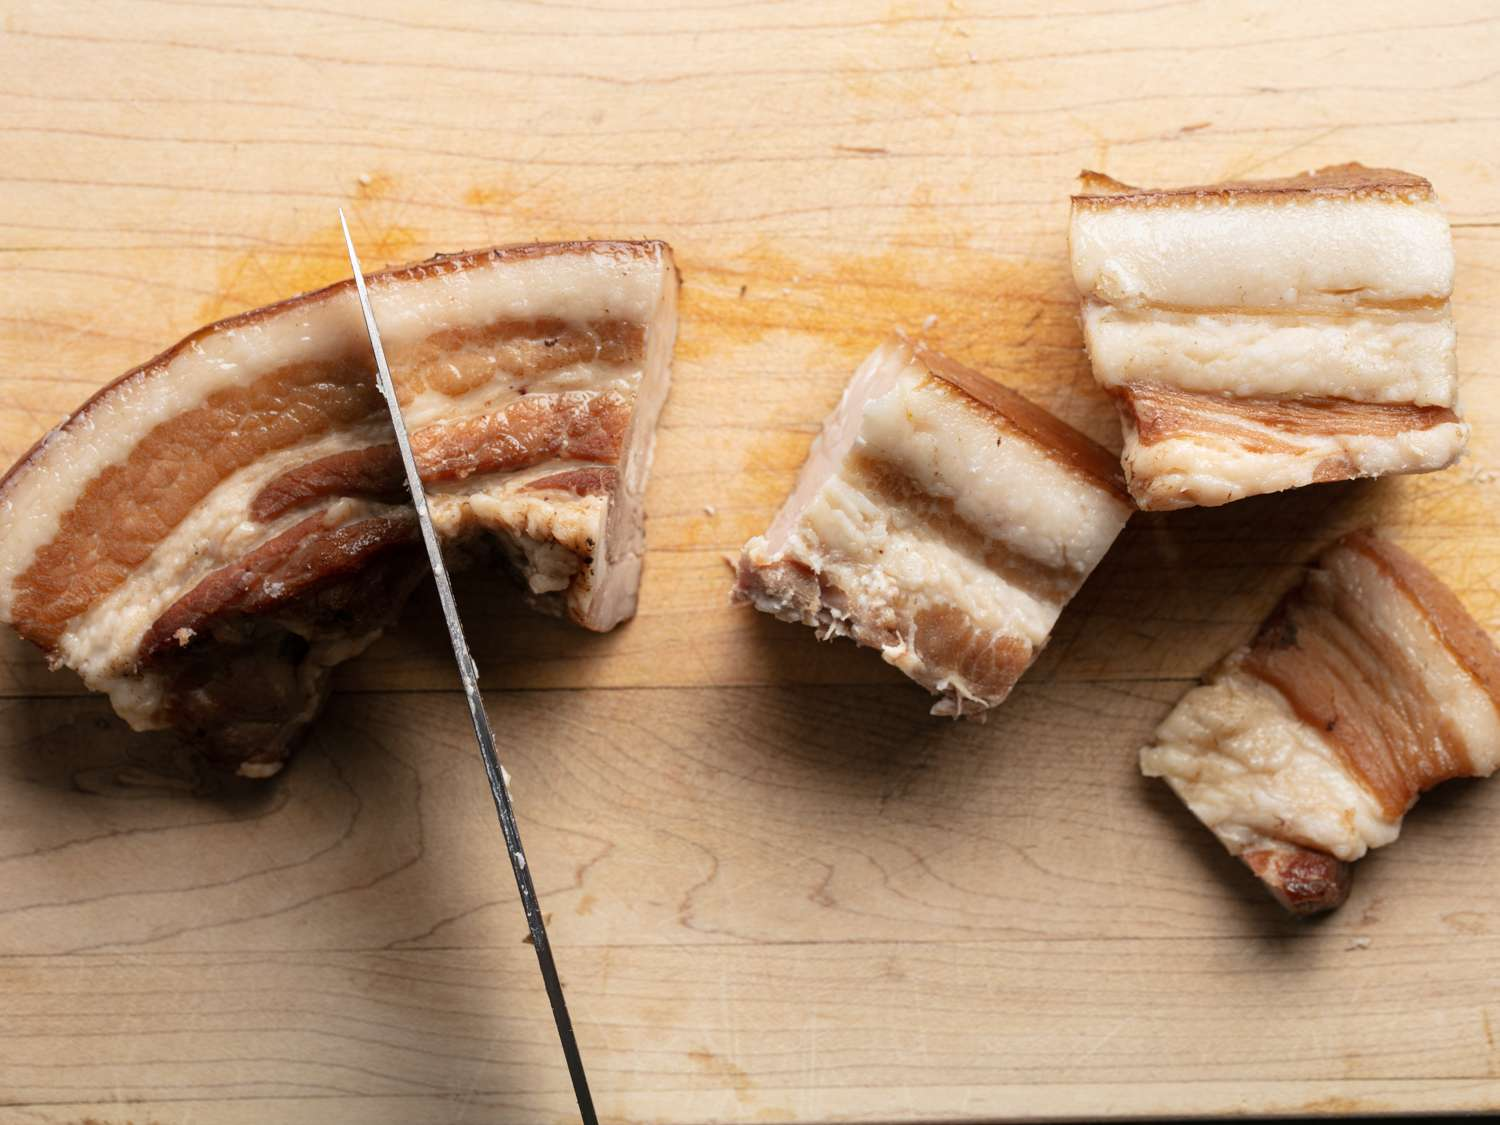 The cooked pork belly after it has been refrigerated overnight, being cut into 2 inch pieces